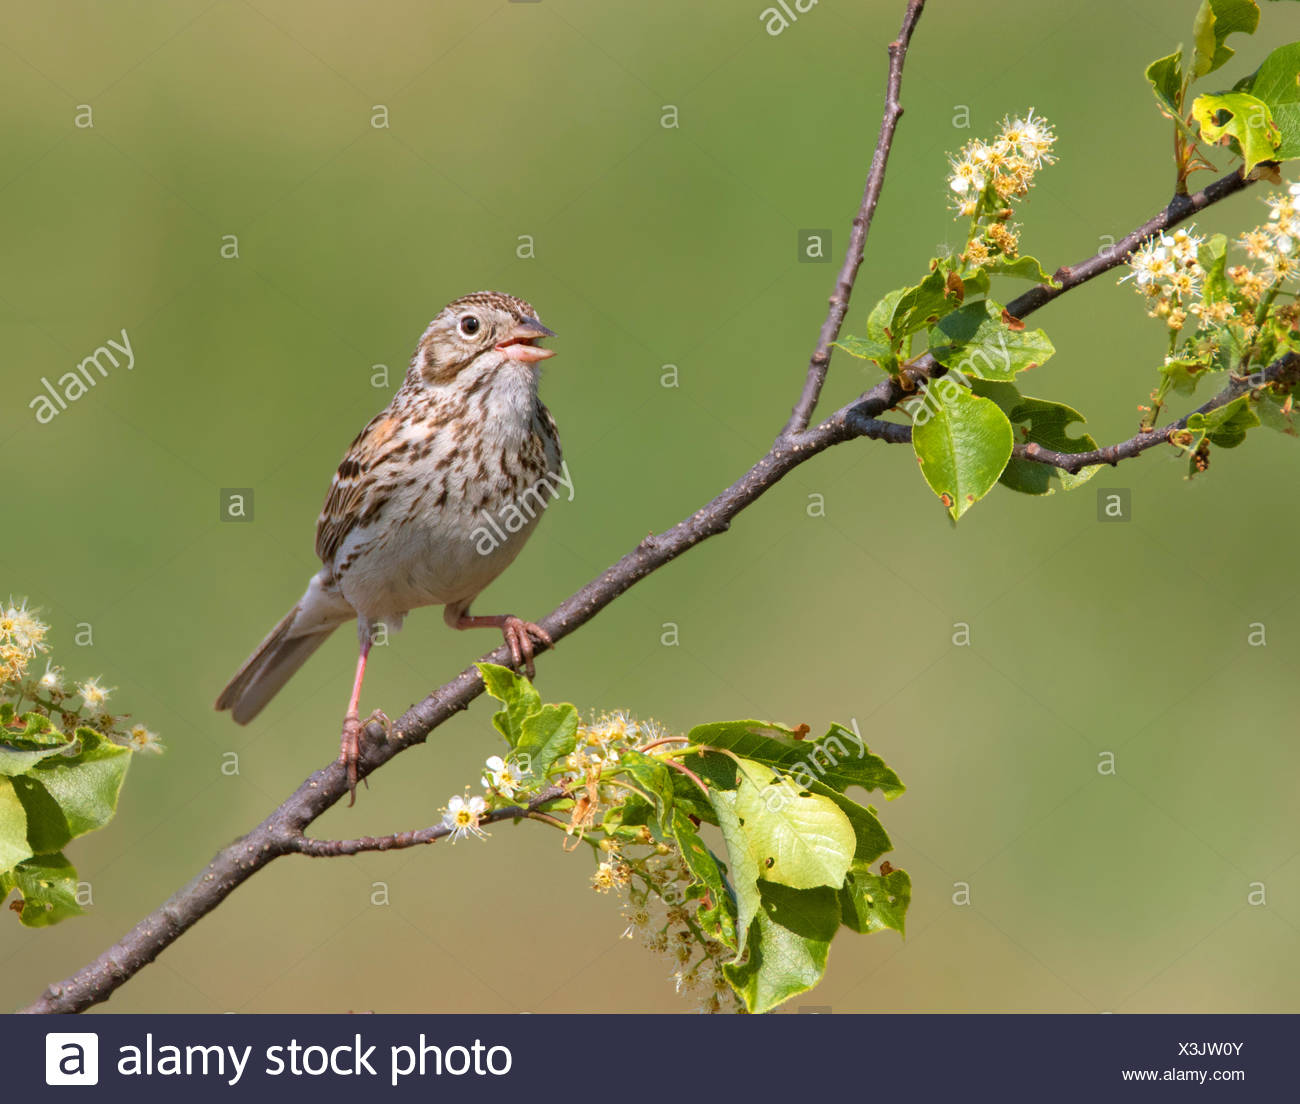 A  Vesper Sparrow, Pooecetes gramineus sings from a blooming shrub in Saskatoon, Saskatchewan - Stock Image